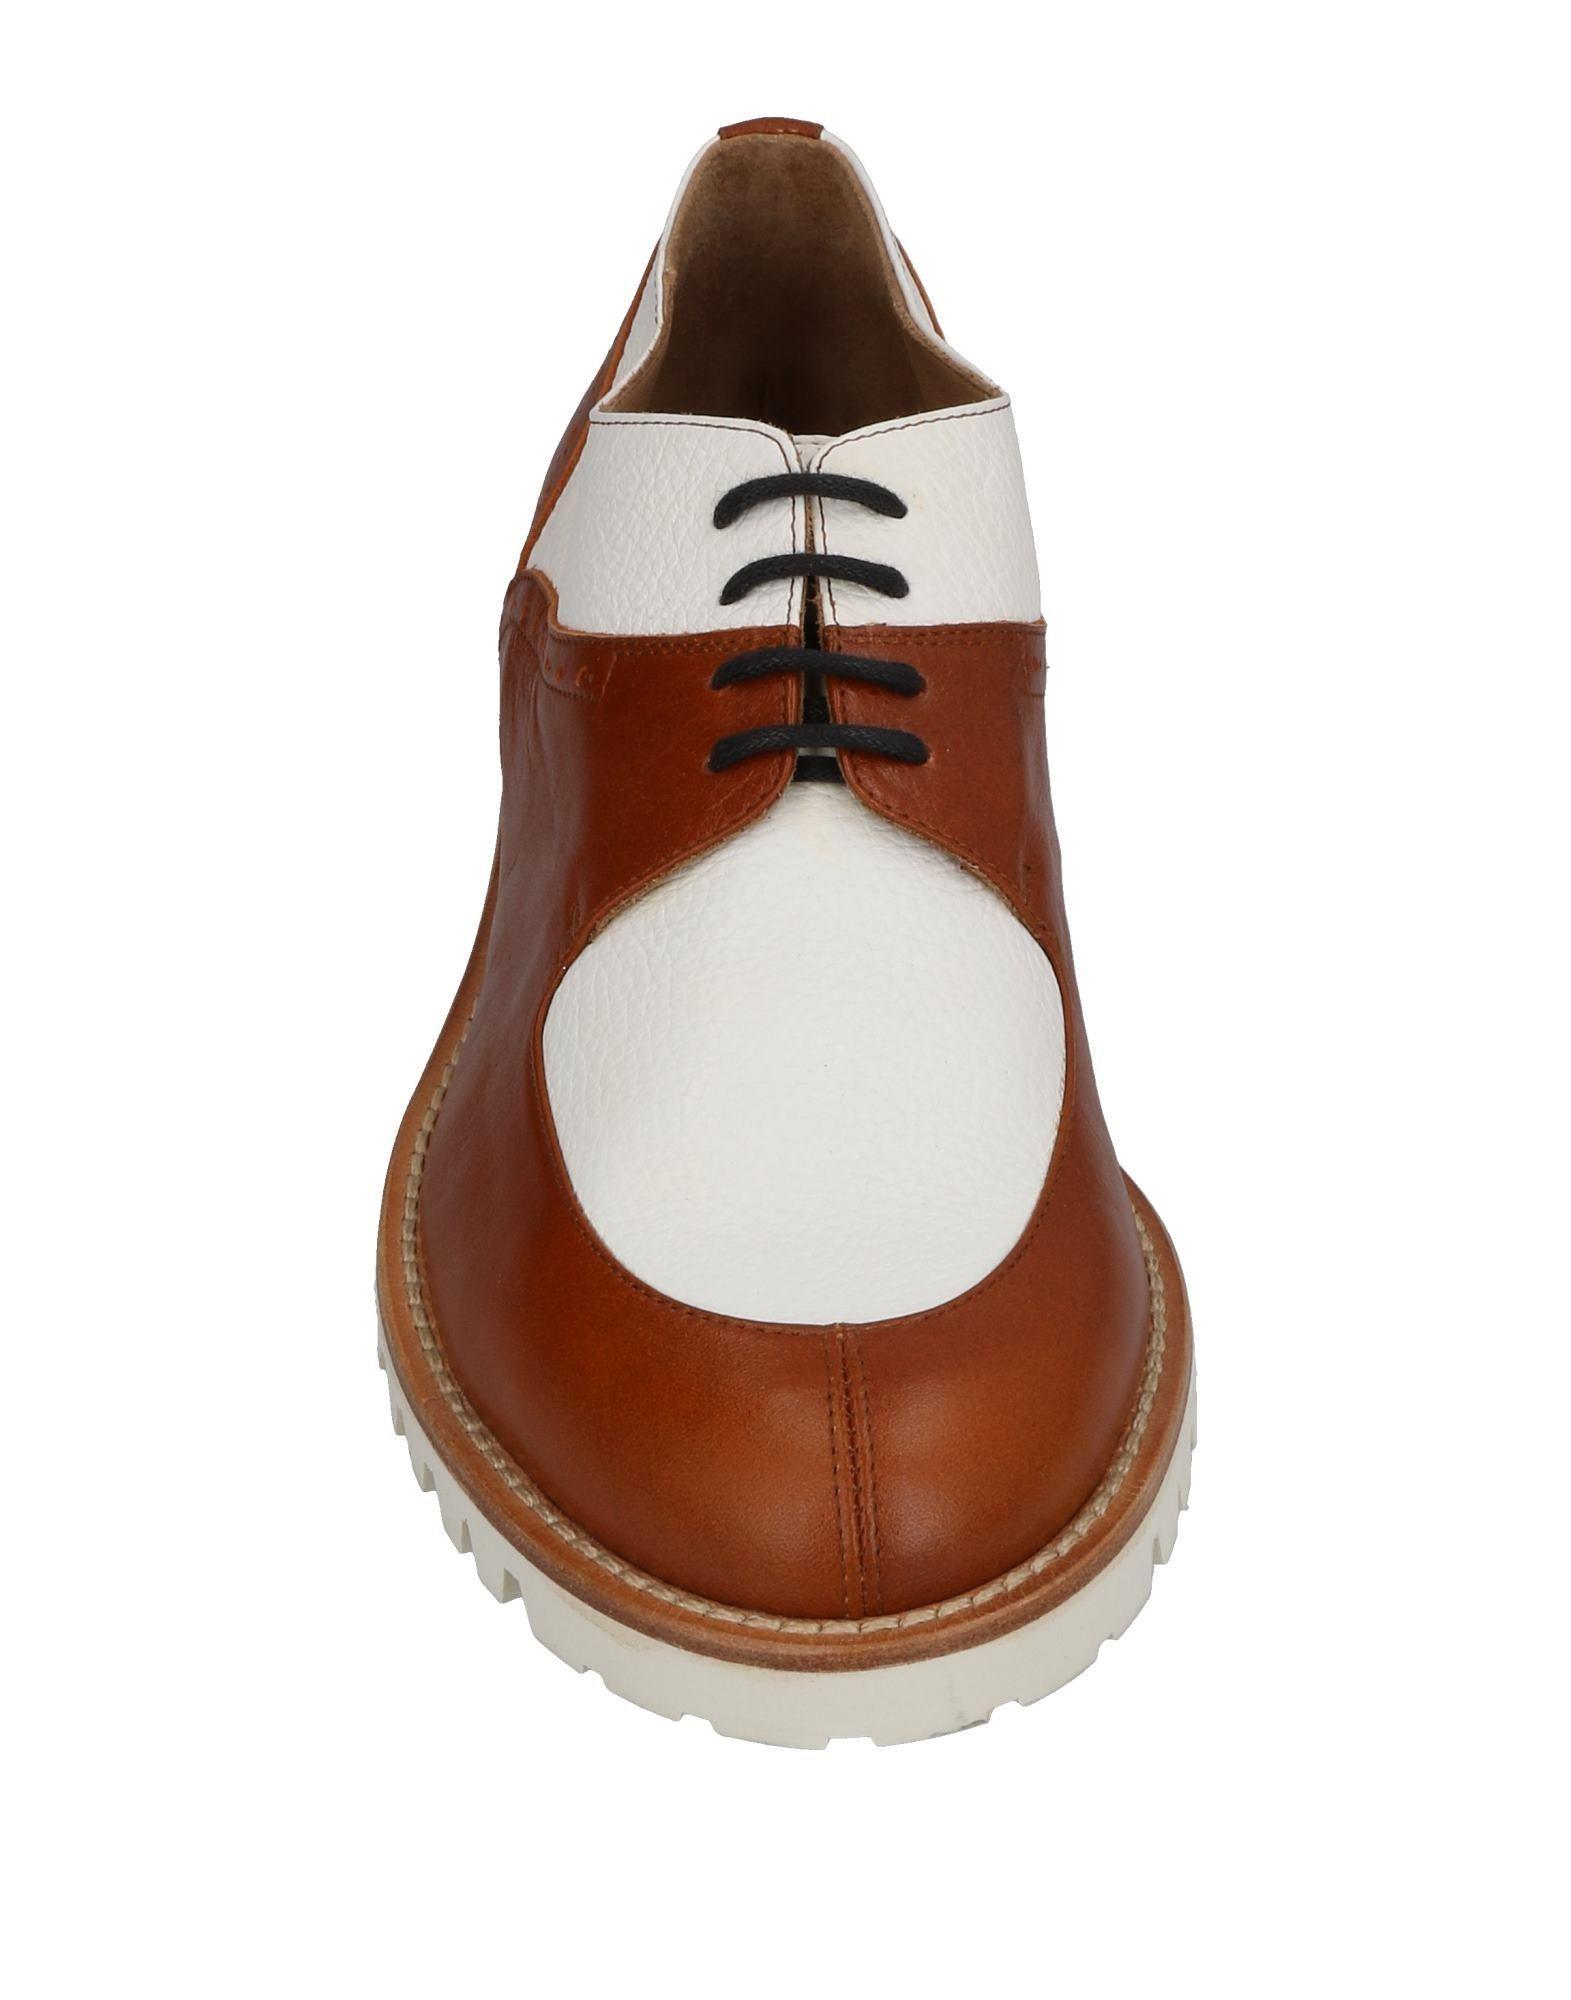 L'f Shoes Leather Lace-up Shoe in Brown for Men